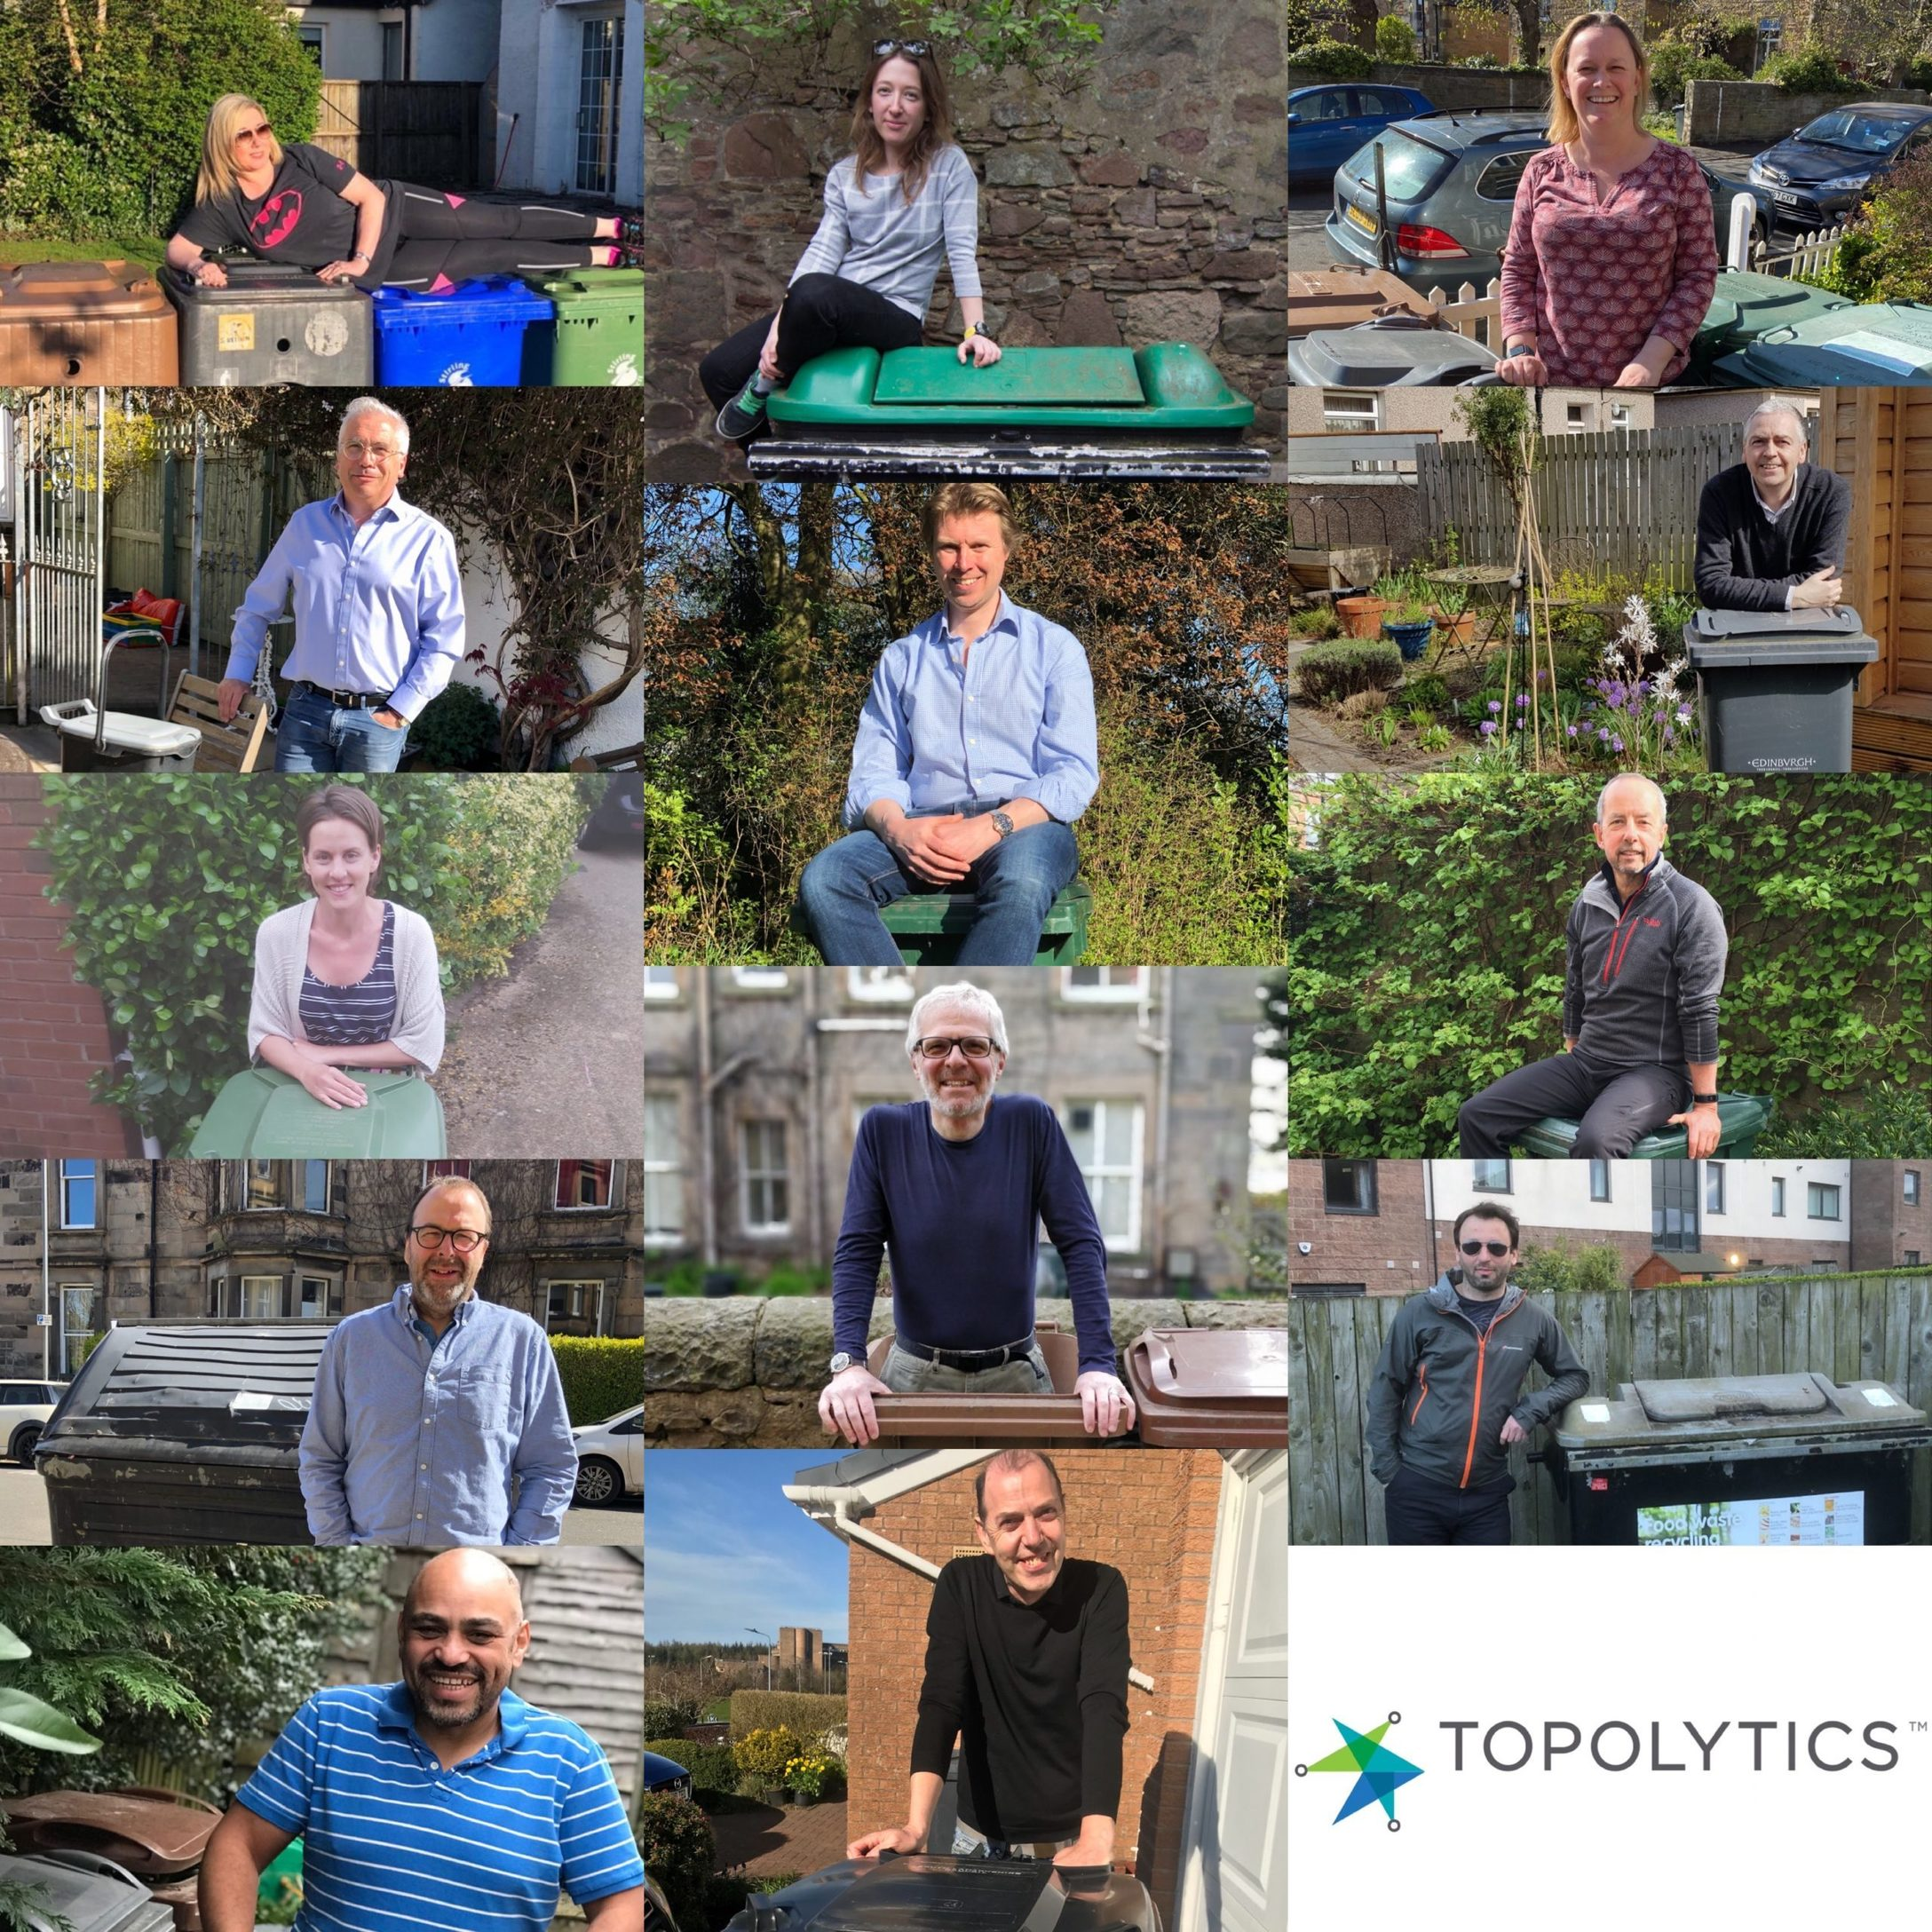 , Topolytics: Mapping the world's waste and enabling the circular economy #TheNextGeo, The Circular Economy